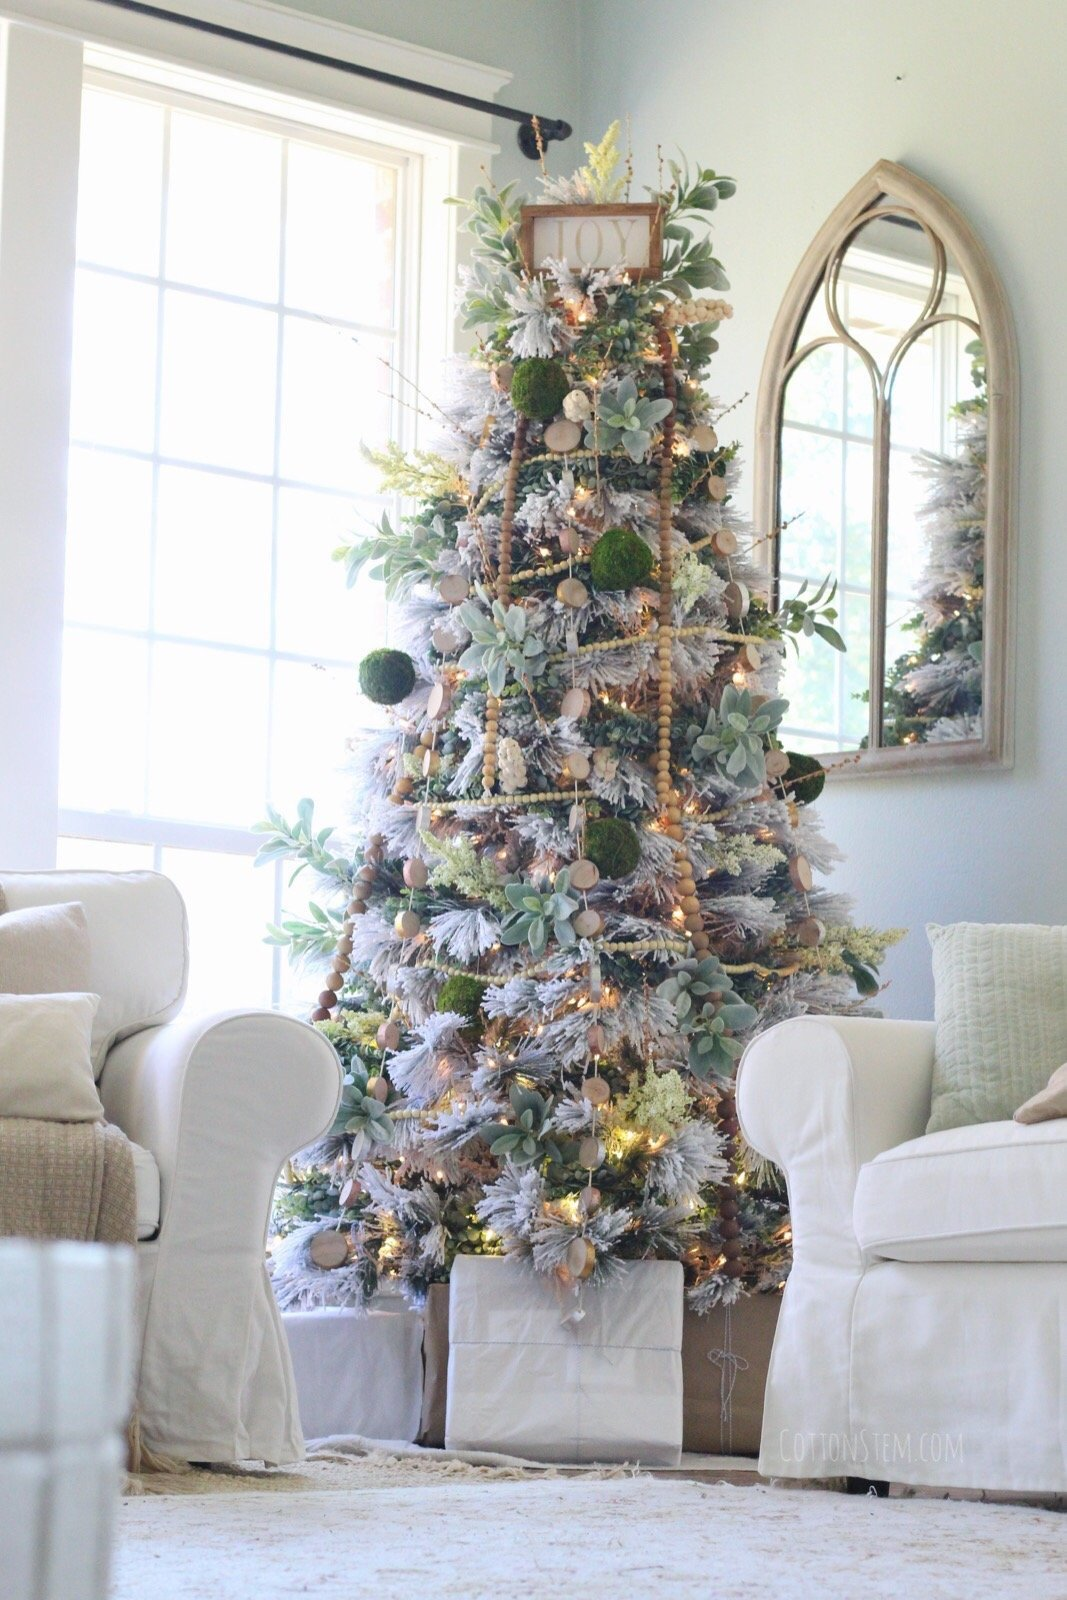 CottonStem.com farmhouse christmas decor flocked tree